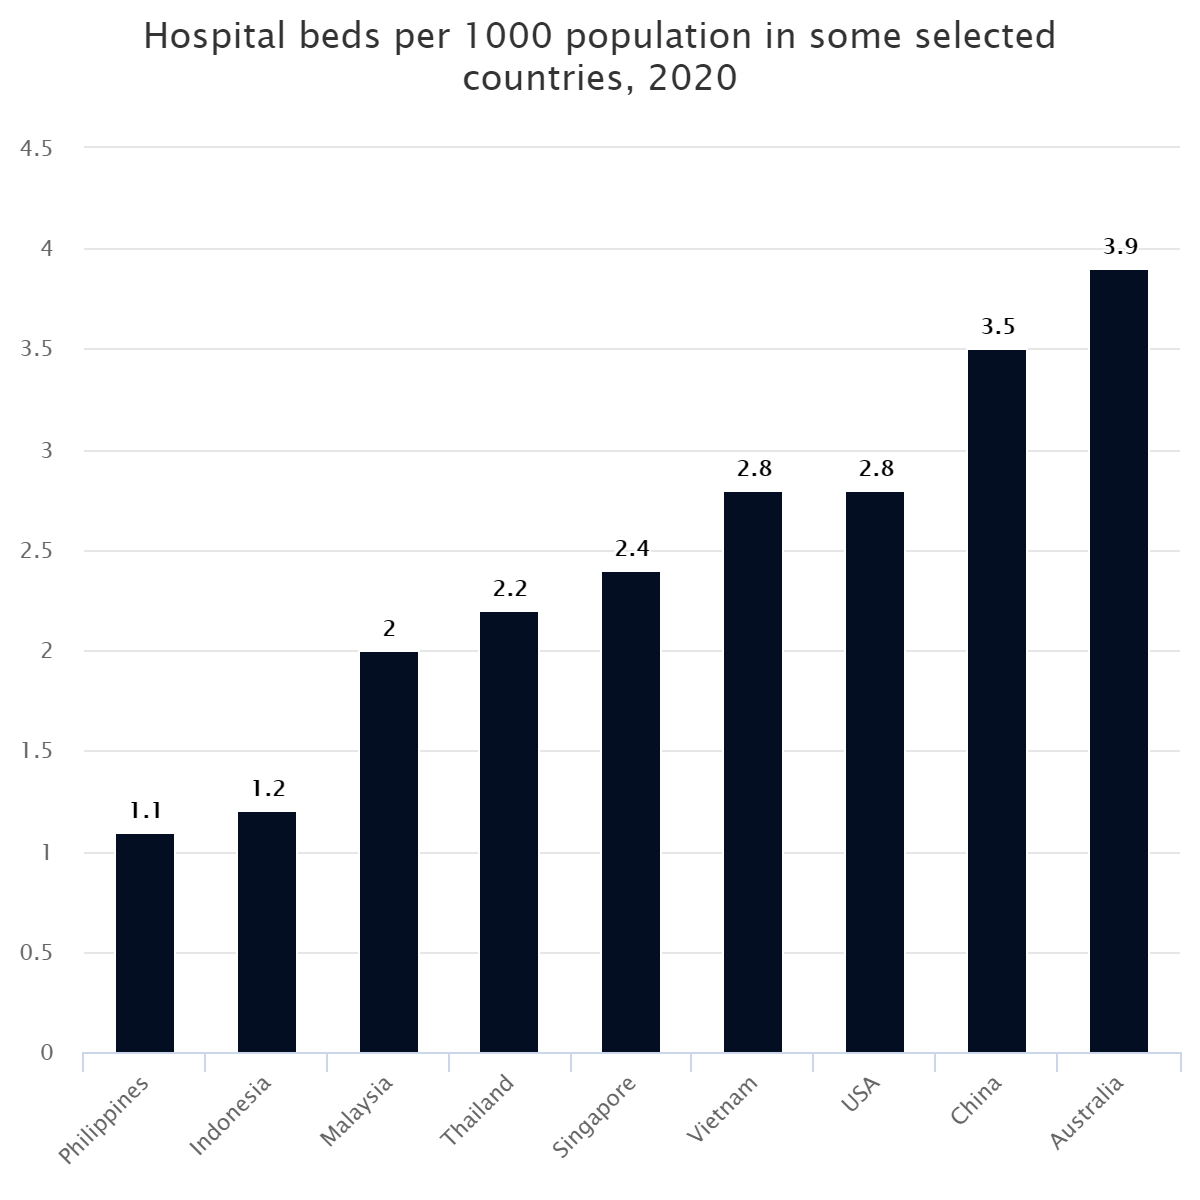 Hospital beds per 1000 population in some selected countries, 2020